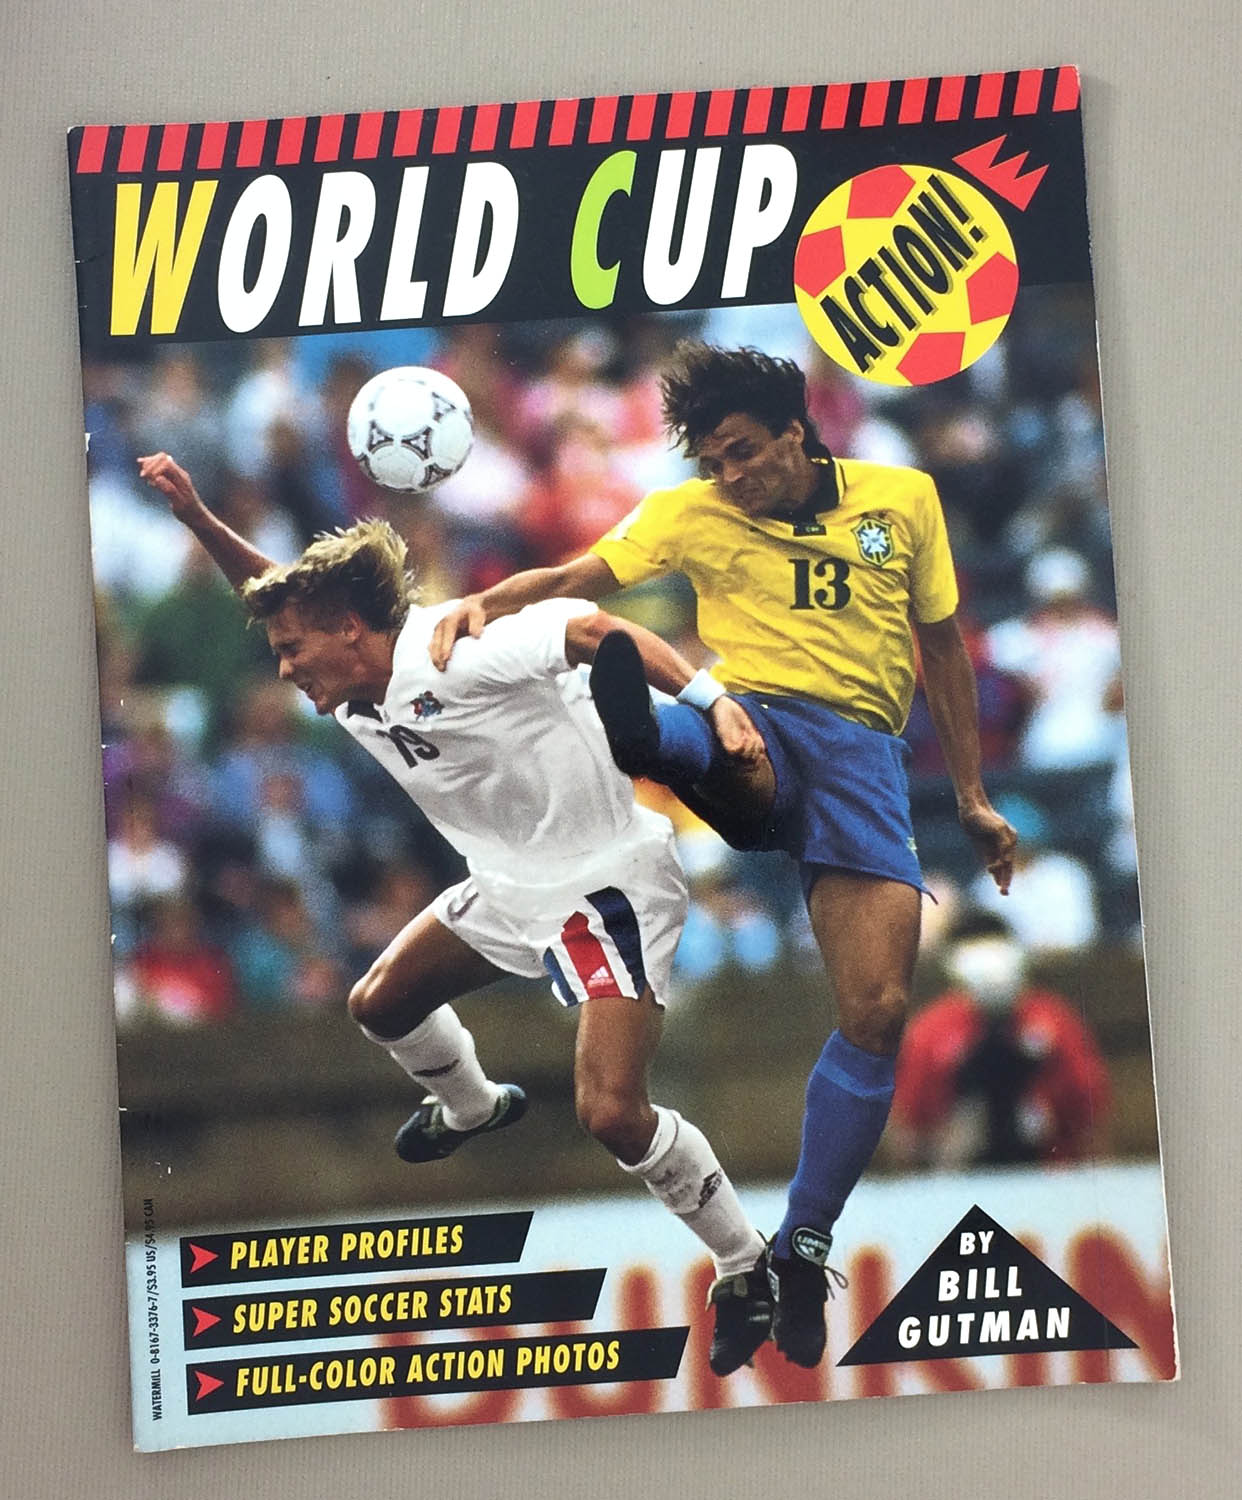 World Cup '94 Action Guide by Bill Gutman